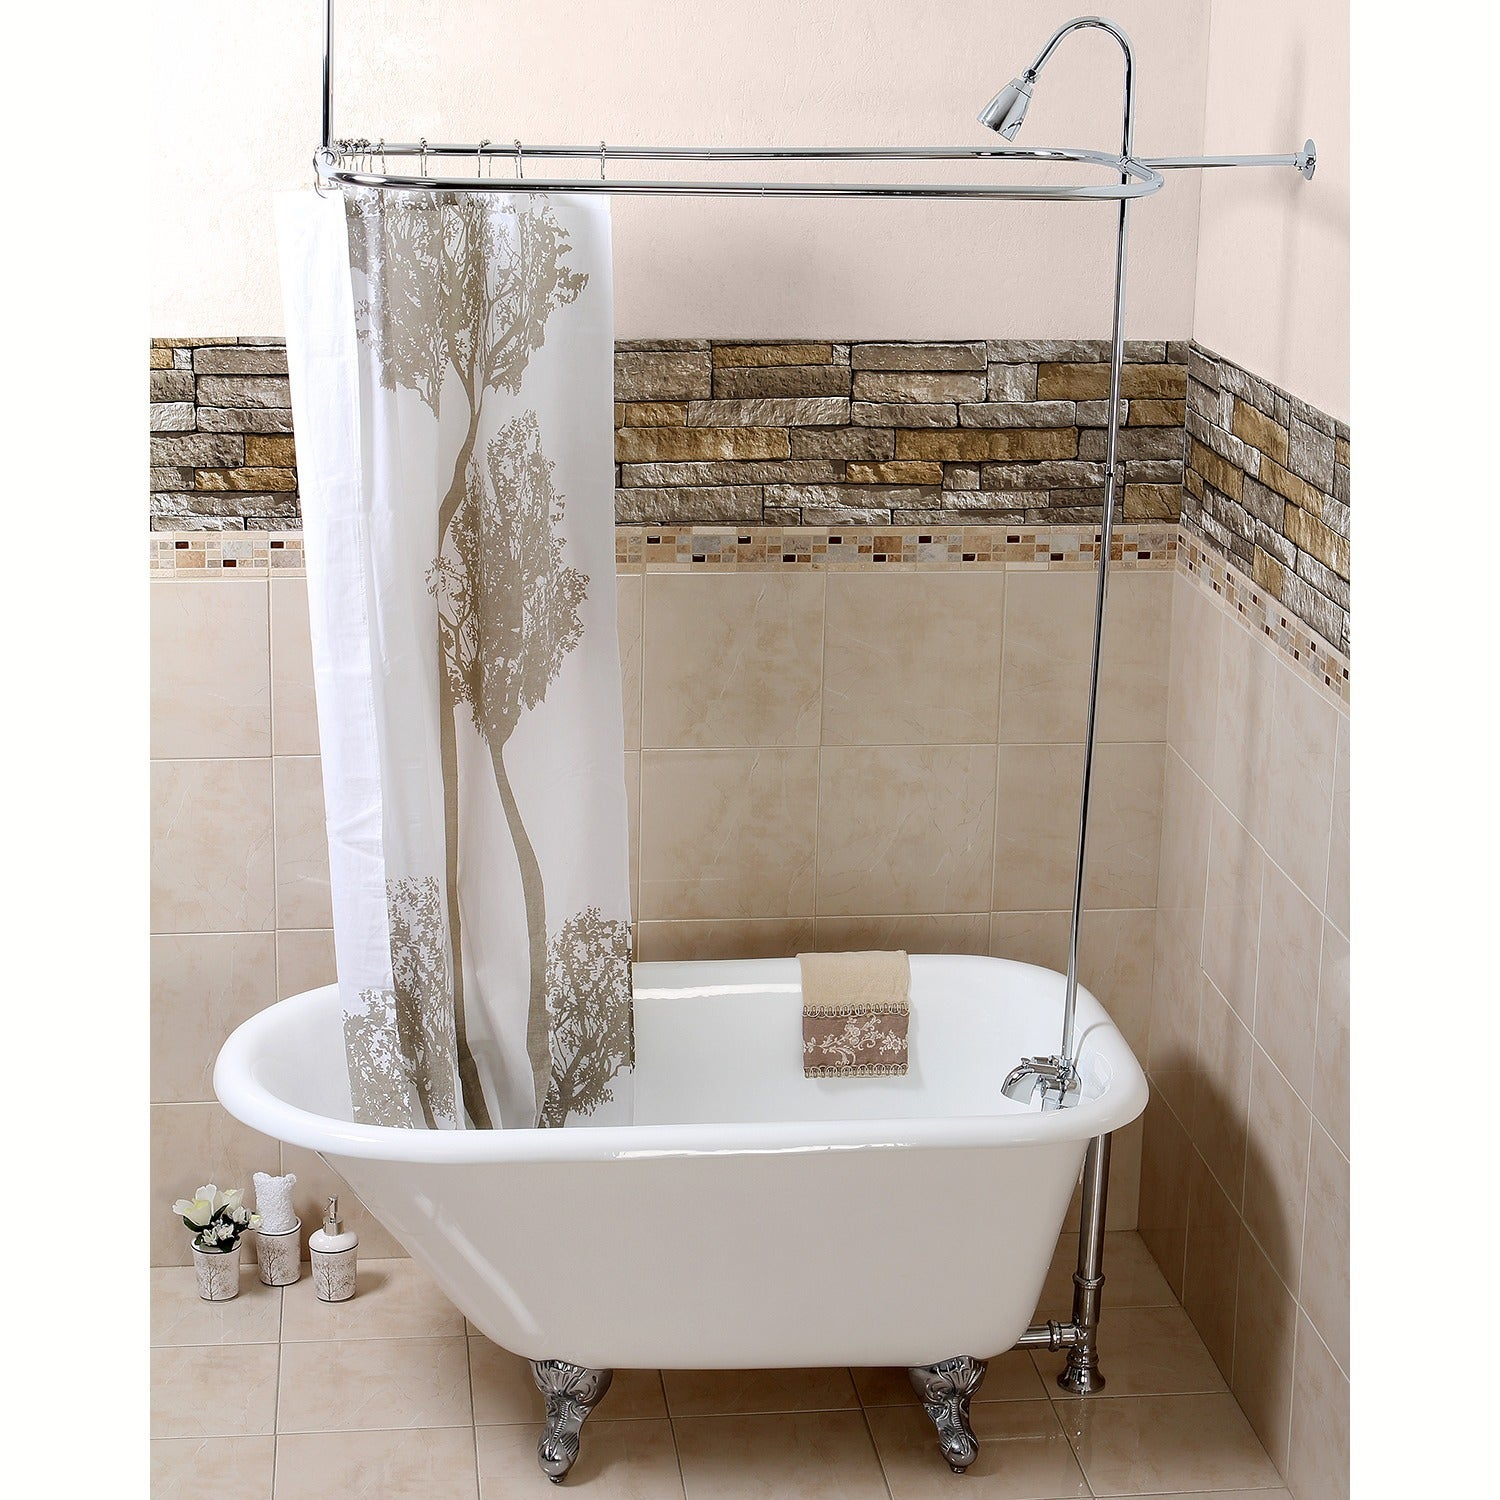 foot for pinterest conversion in best copper tub curtains clawfoot on curtain shower kit claw images about